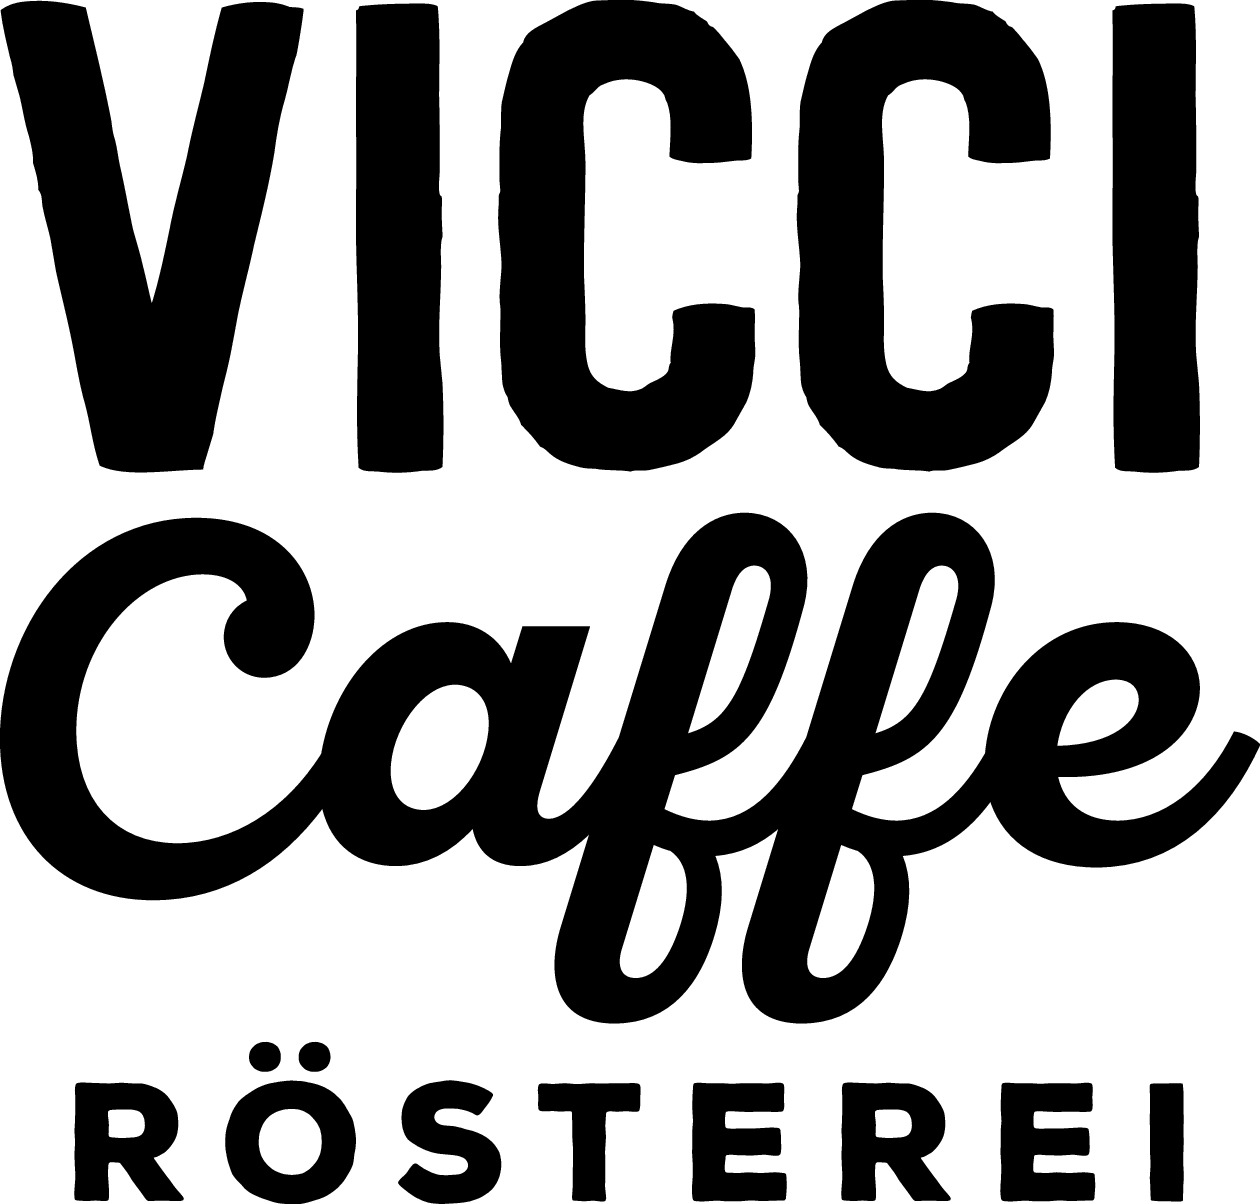 Vicci Caffe Rösterei GmbH & Co. KG Am Hasselt 15 24576 Bad Bramstedt